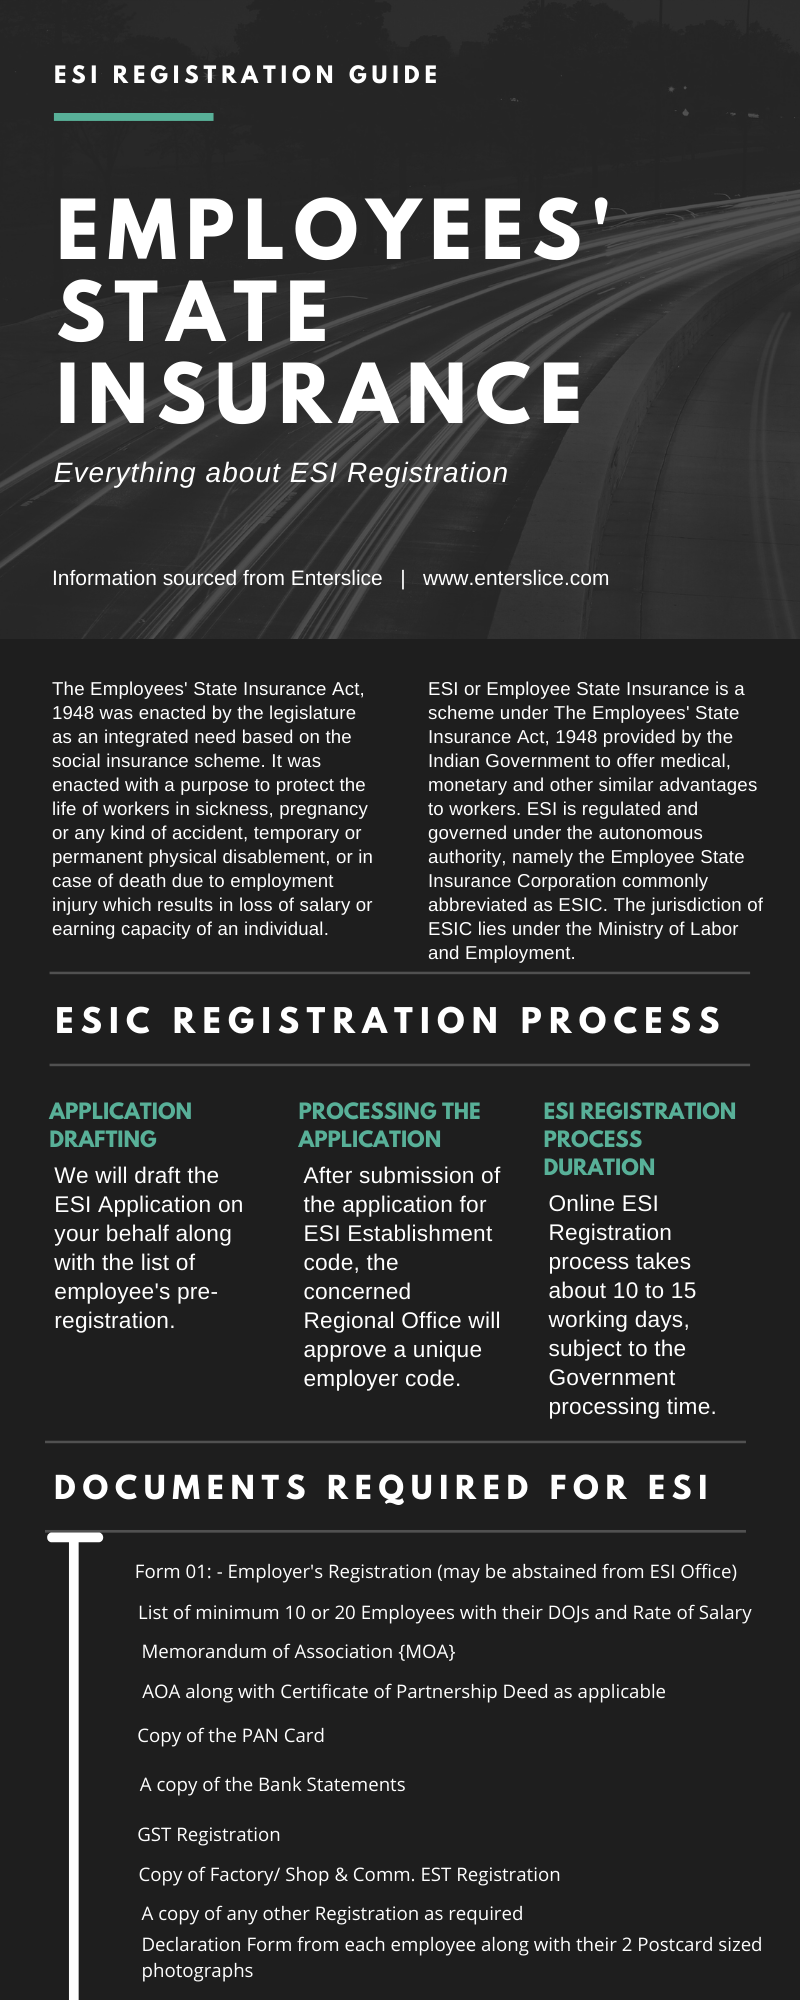 Registration of employers under ESI Act is fully online